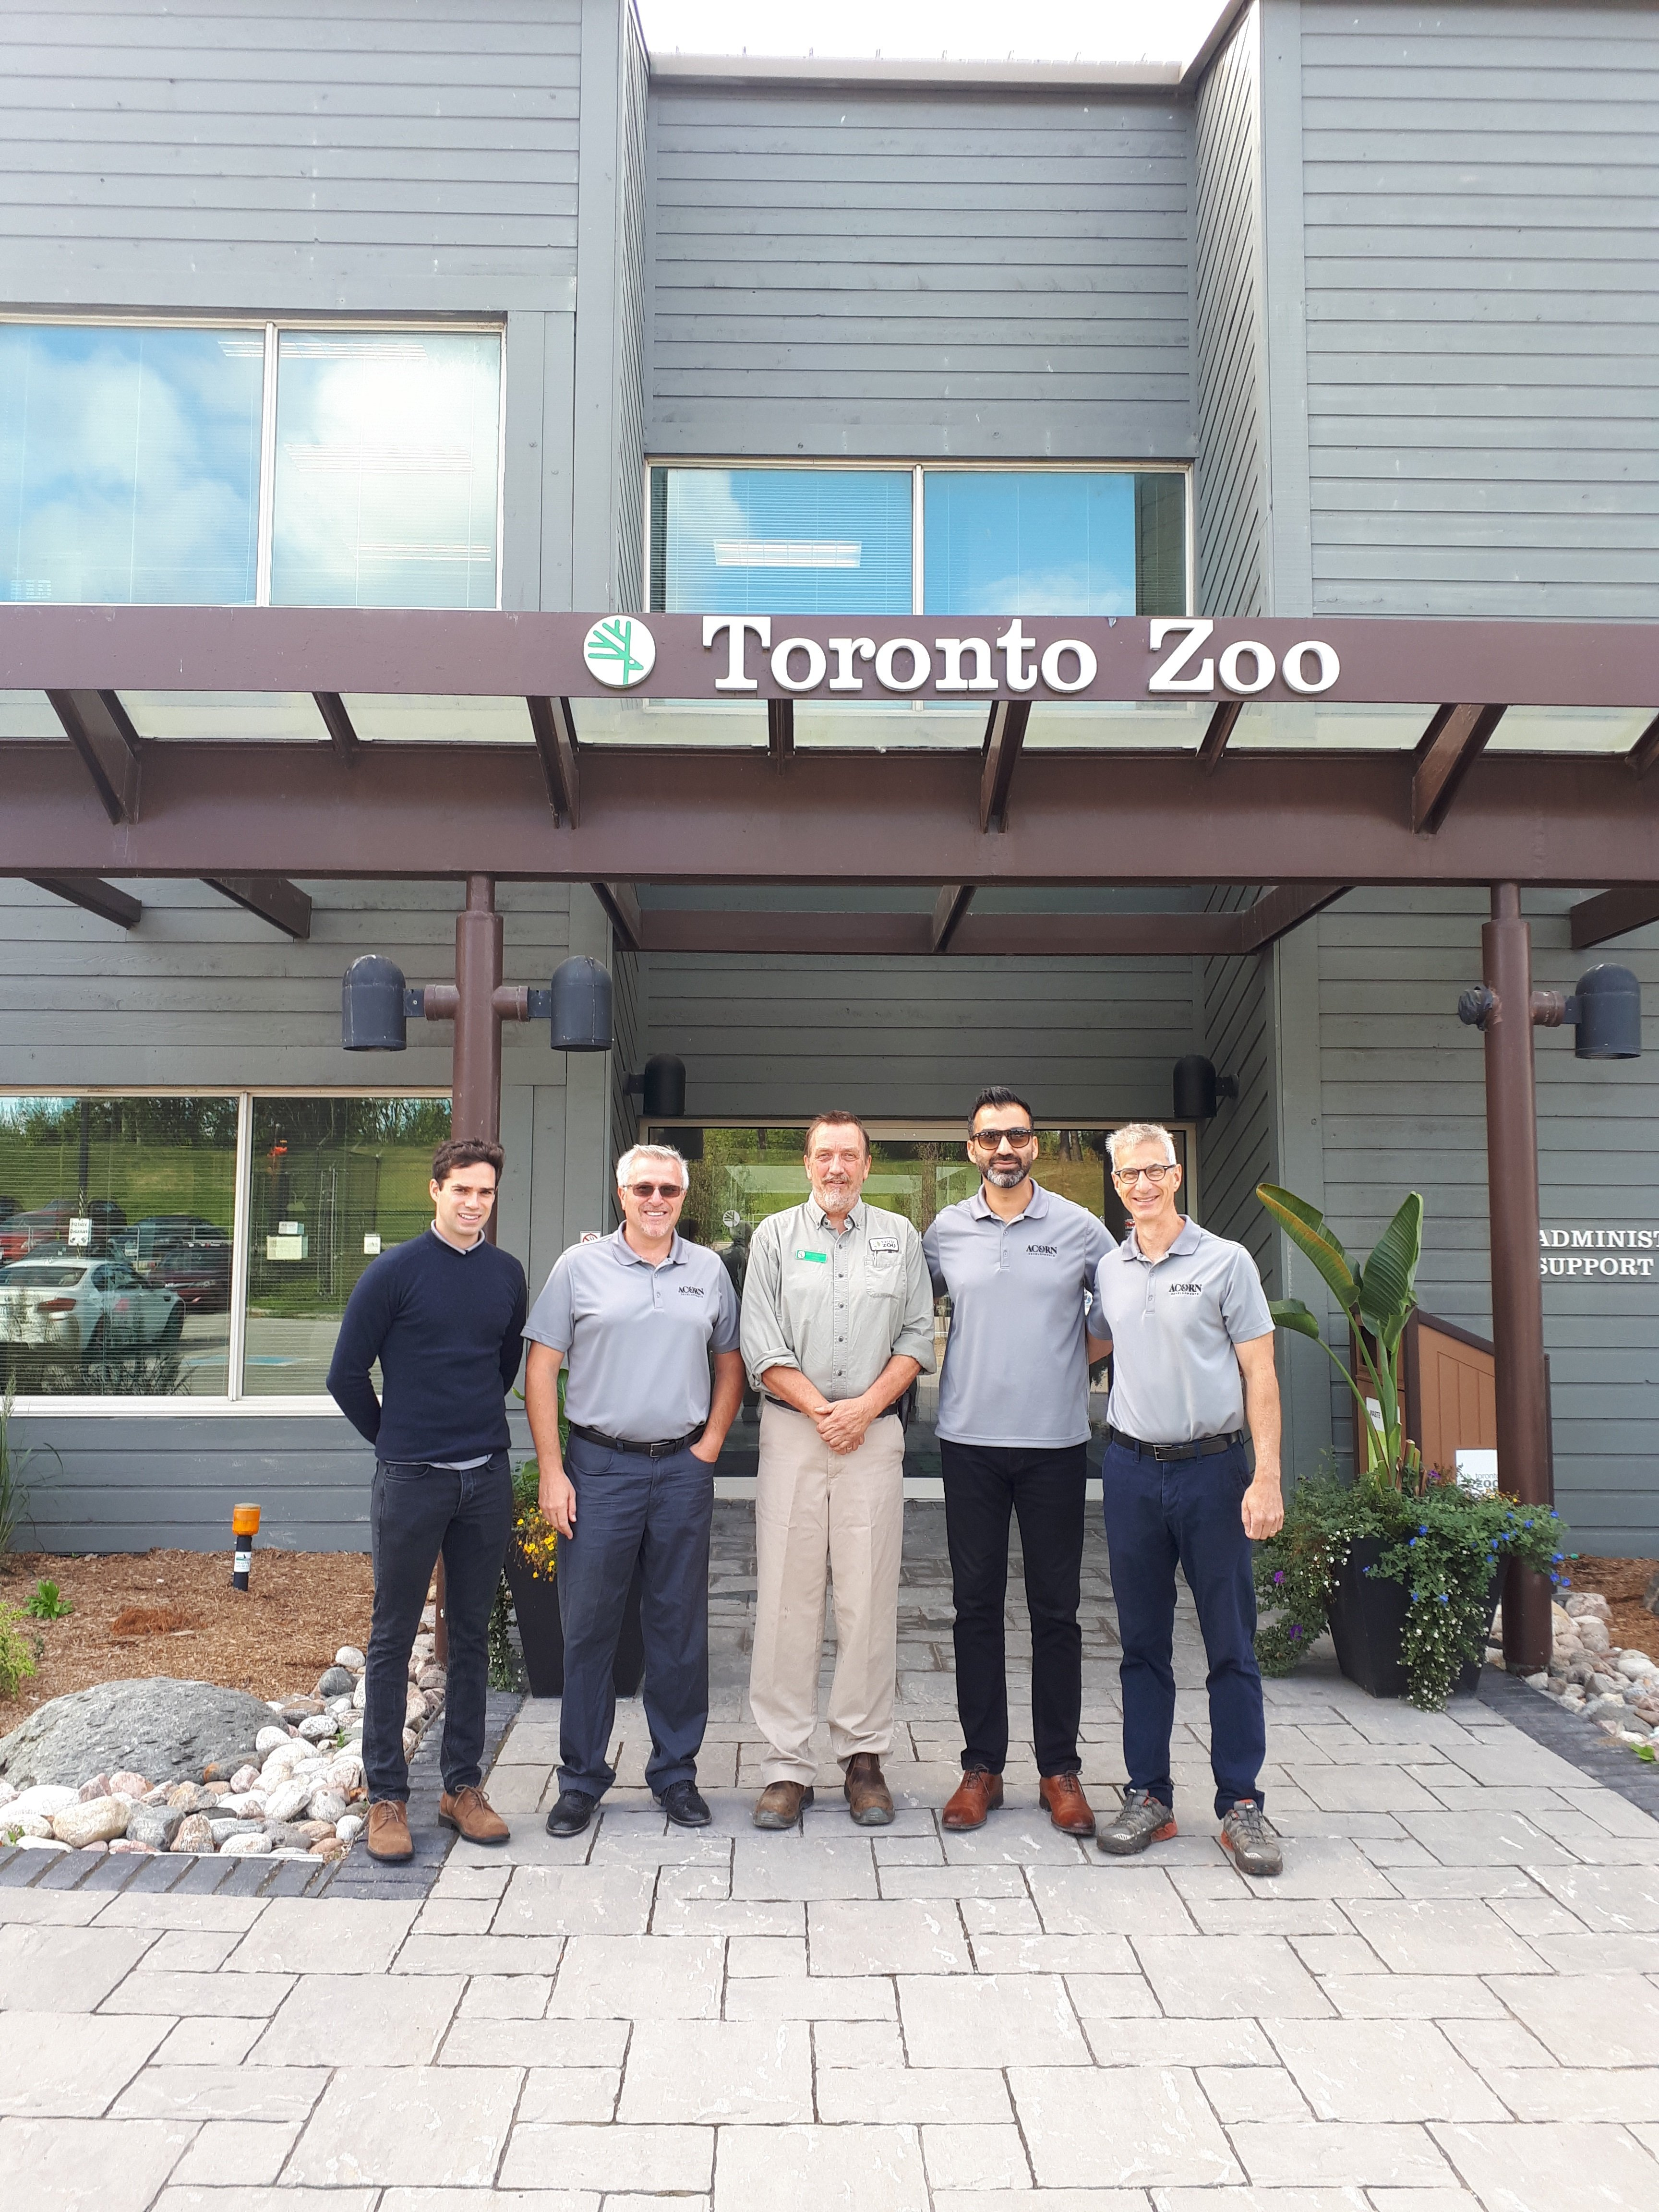 Acorn Team gets a private tour at the Toronto Zoo